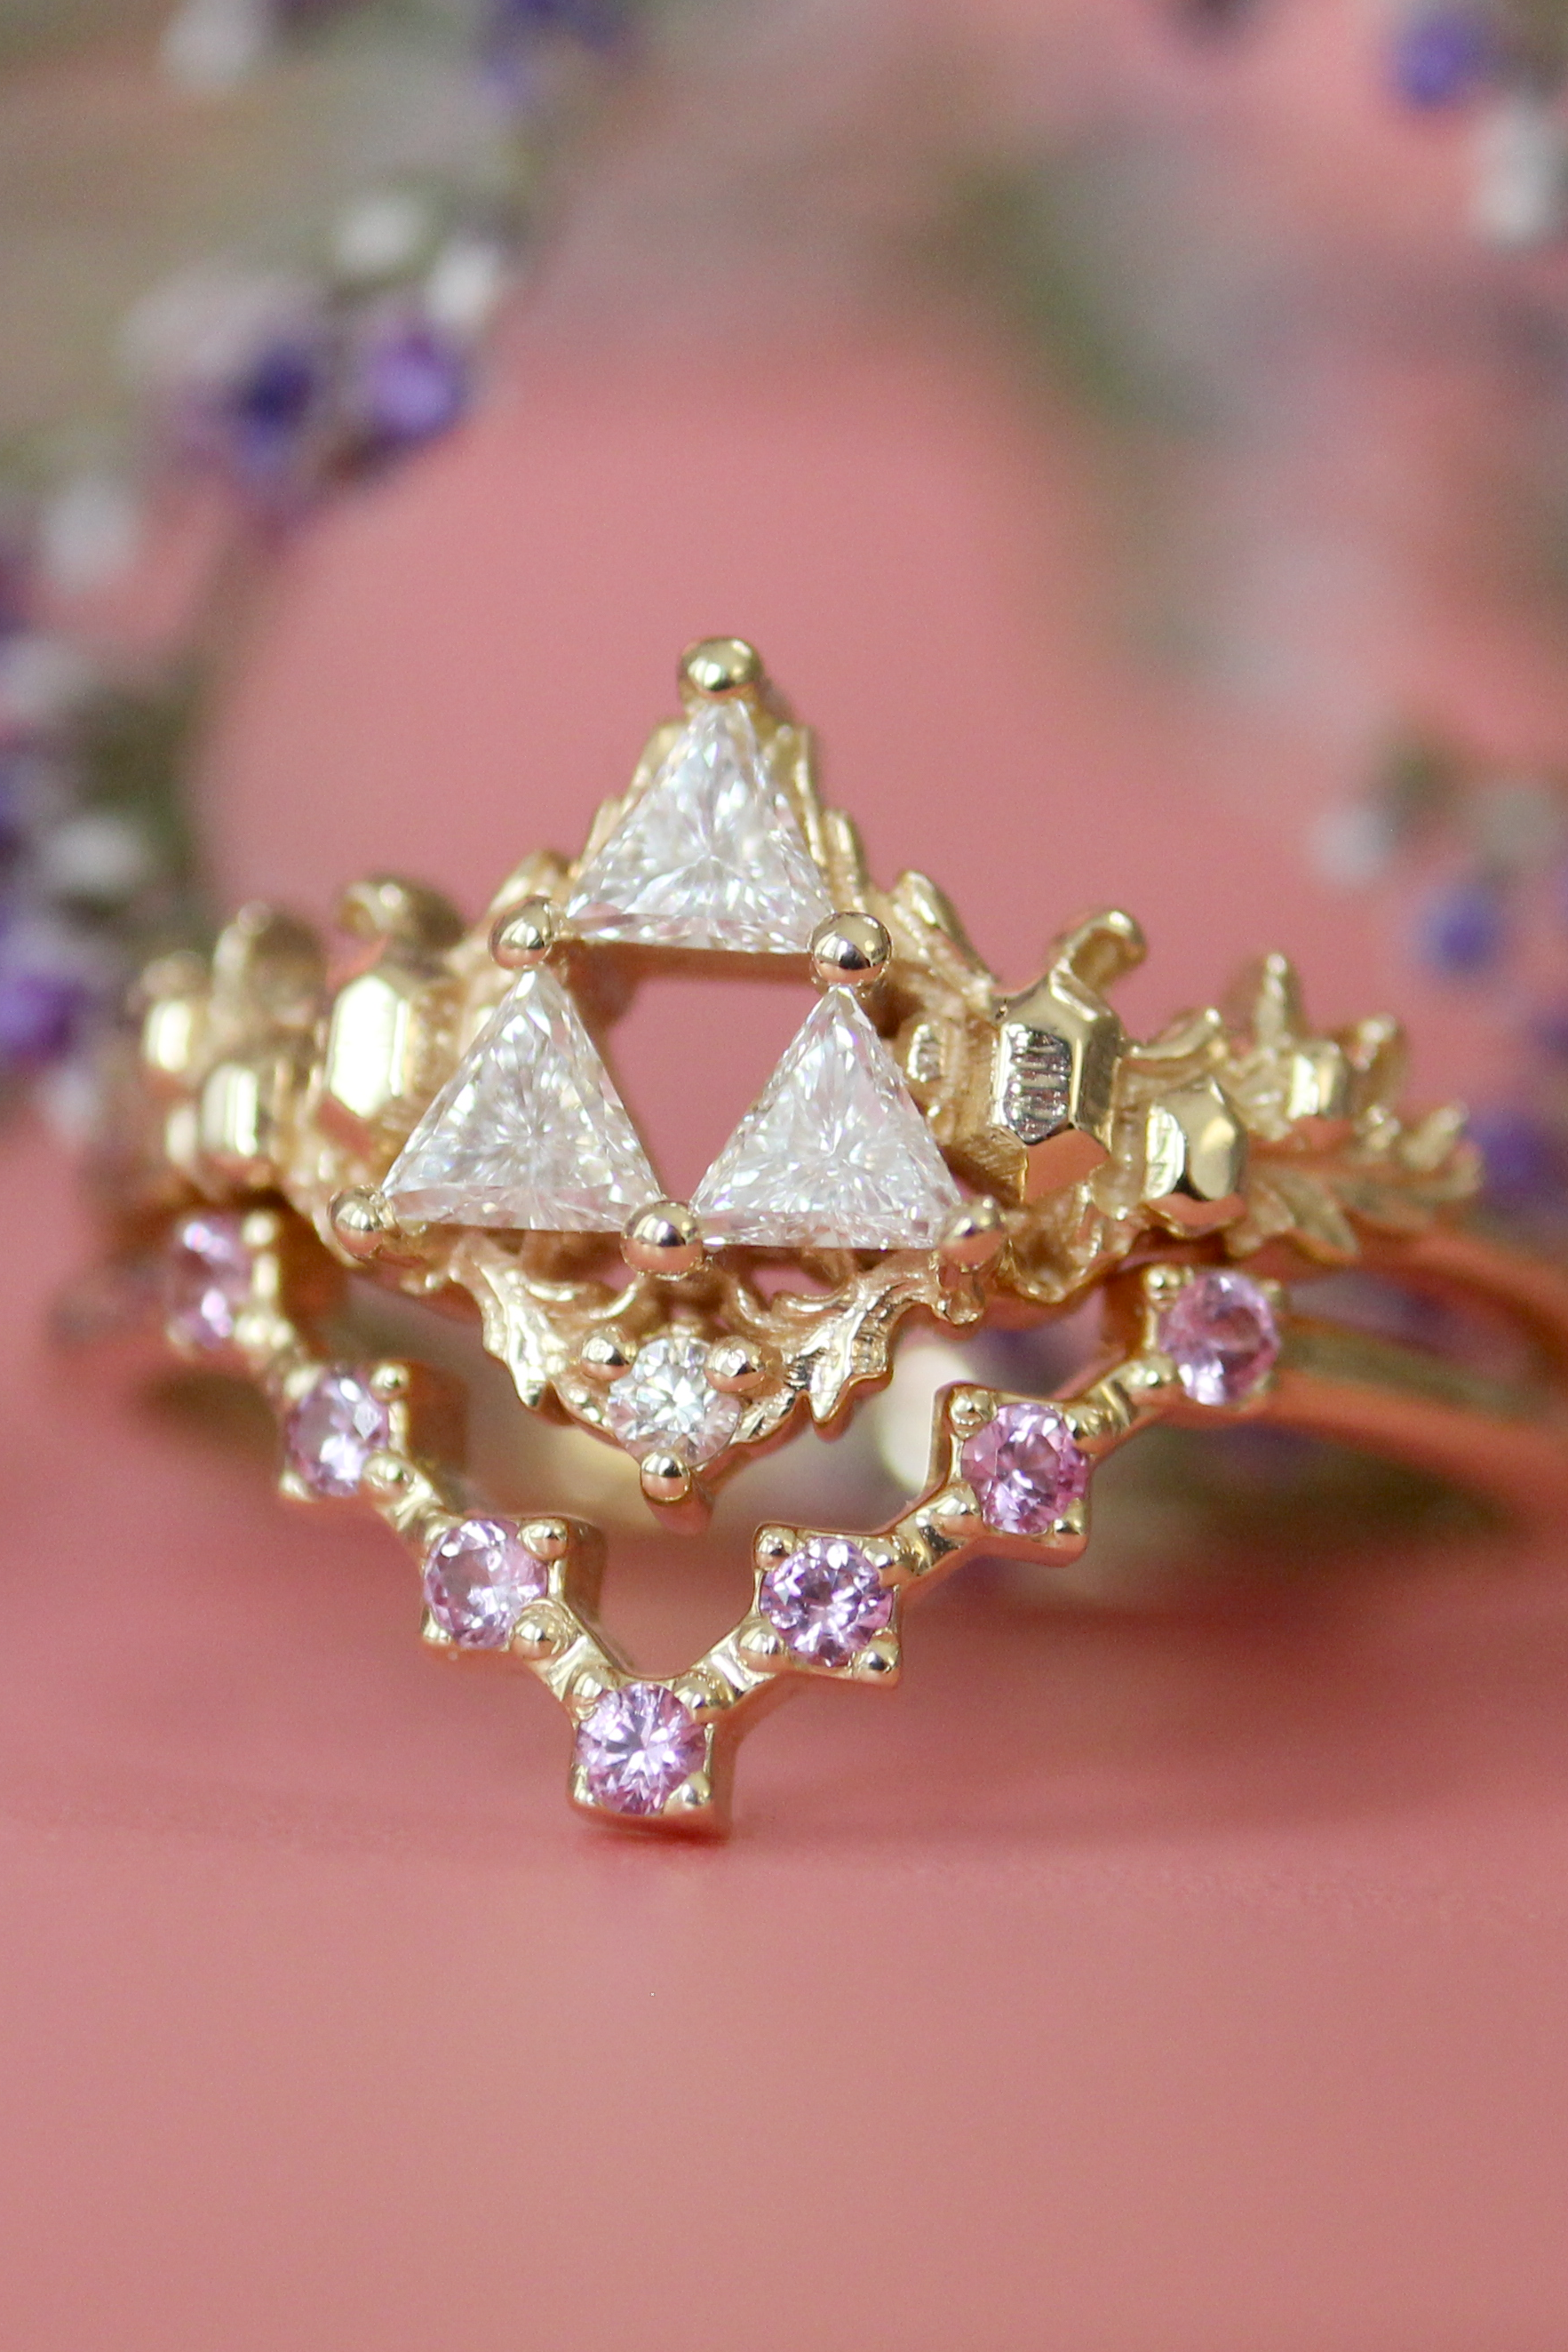 I feel like Princess Zelda would wear this ring stack! The Goddesses ...